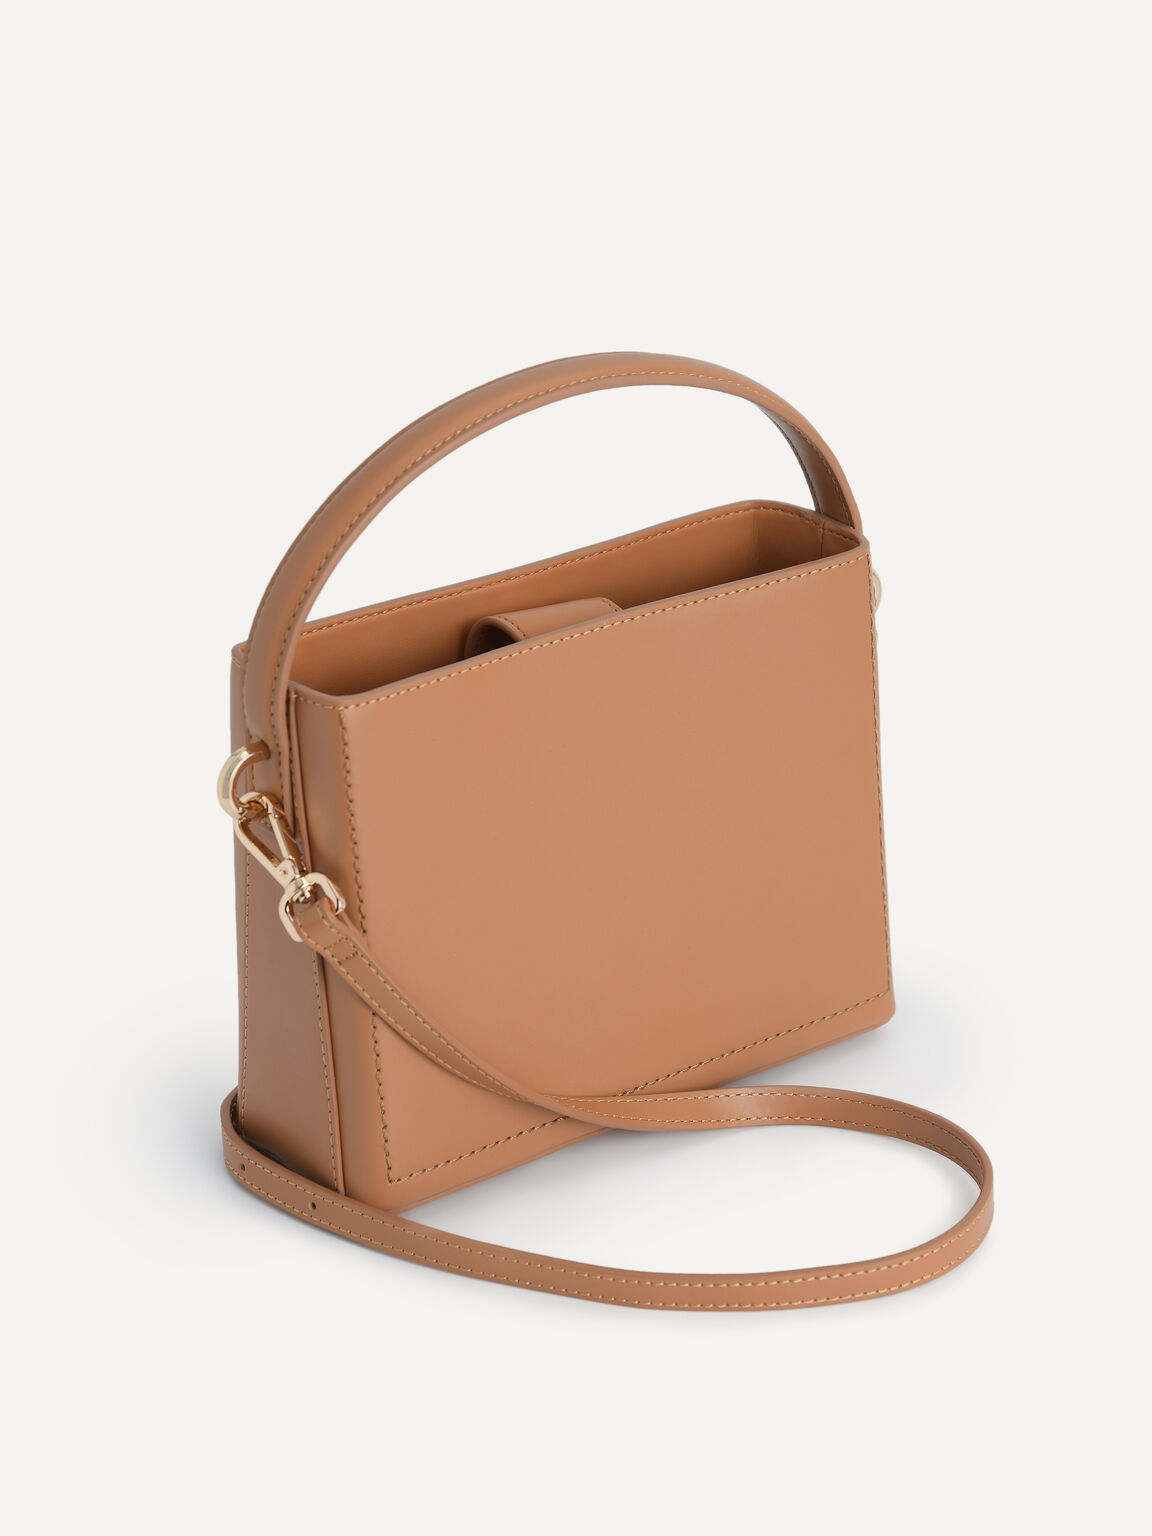 Boxy Top Handle with Braided Strap, Camel, hi-res